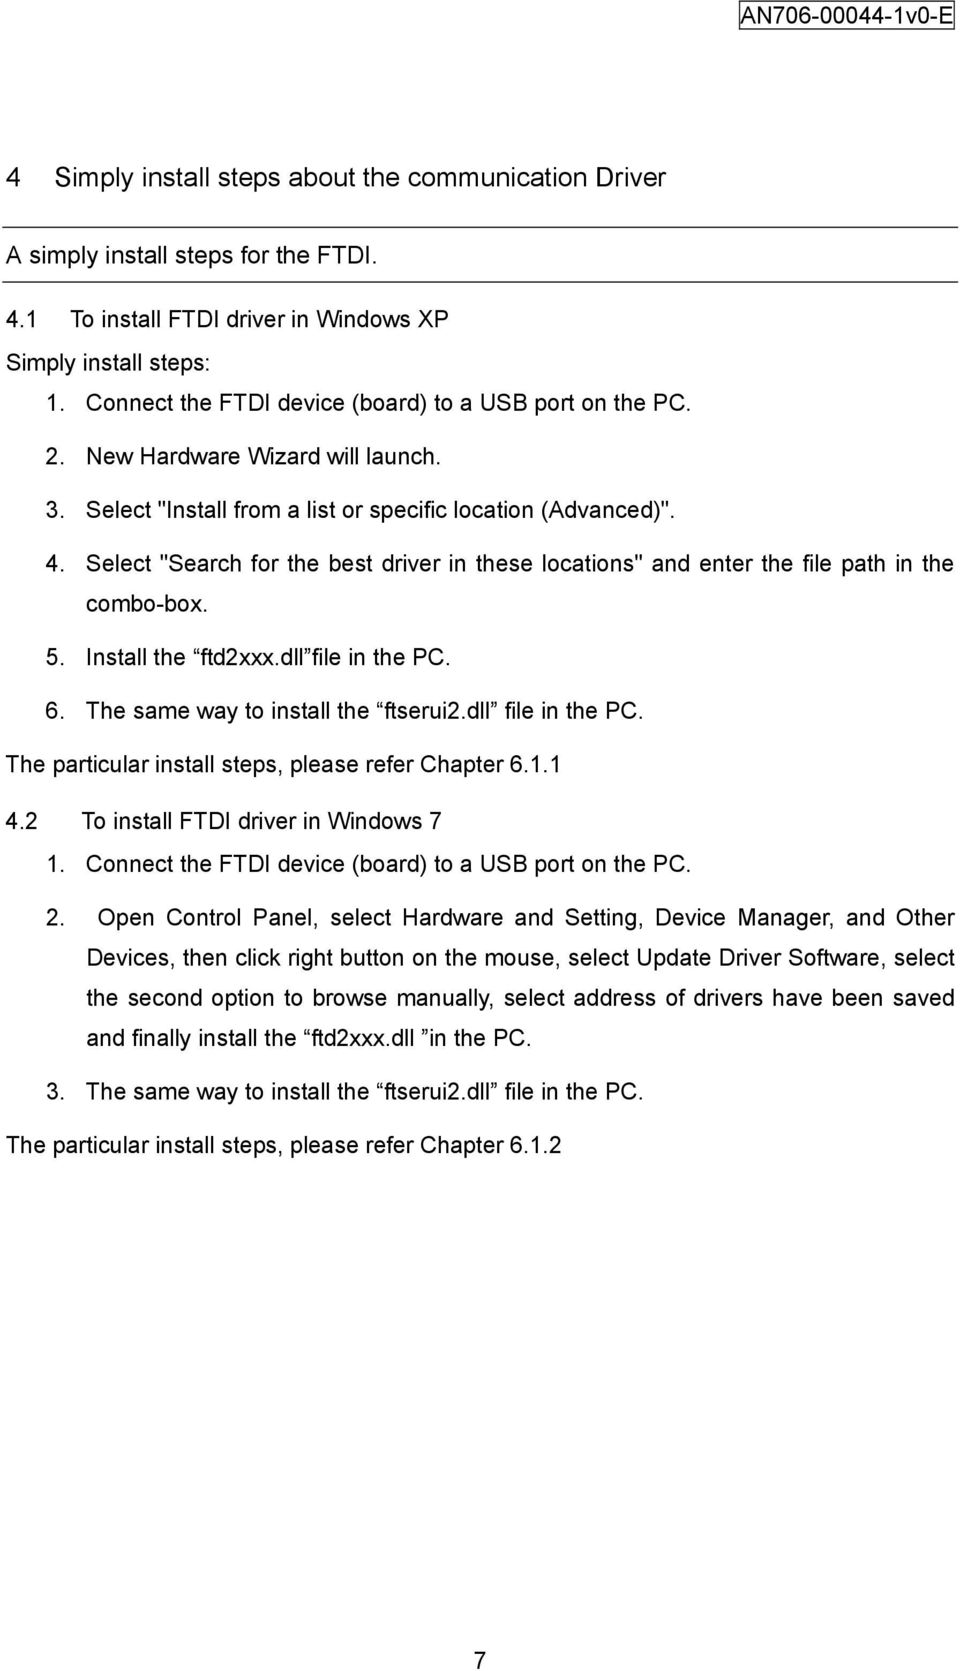 "Select ""Search for the best driver in these locations"" and enter the file path in the combo-box. 5. Install the ftd2xxx.dll file in the PC. 6. The same way to install the ftserui2.dll file in the PC. The particular install steps, please refer Chapter 6."